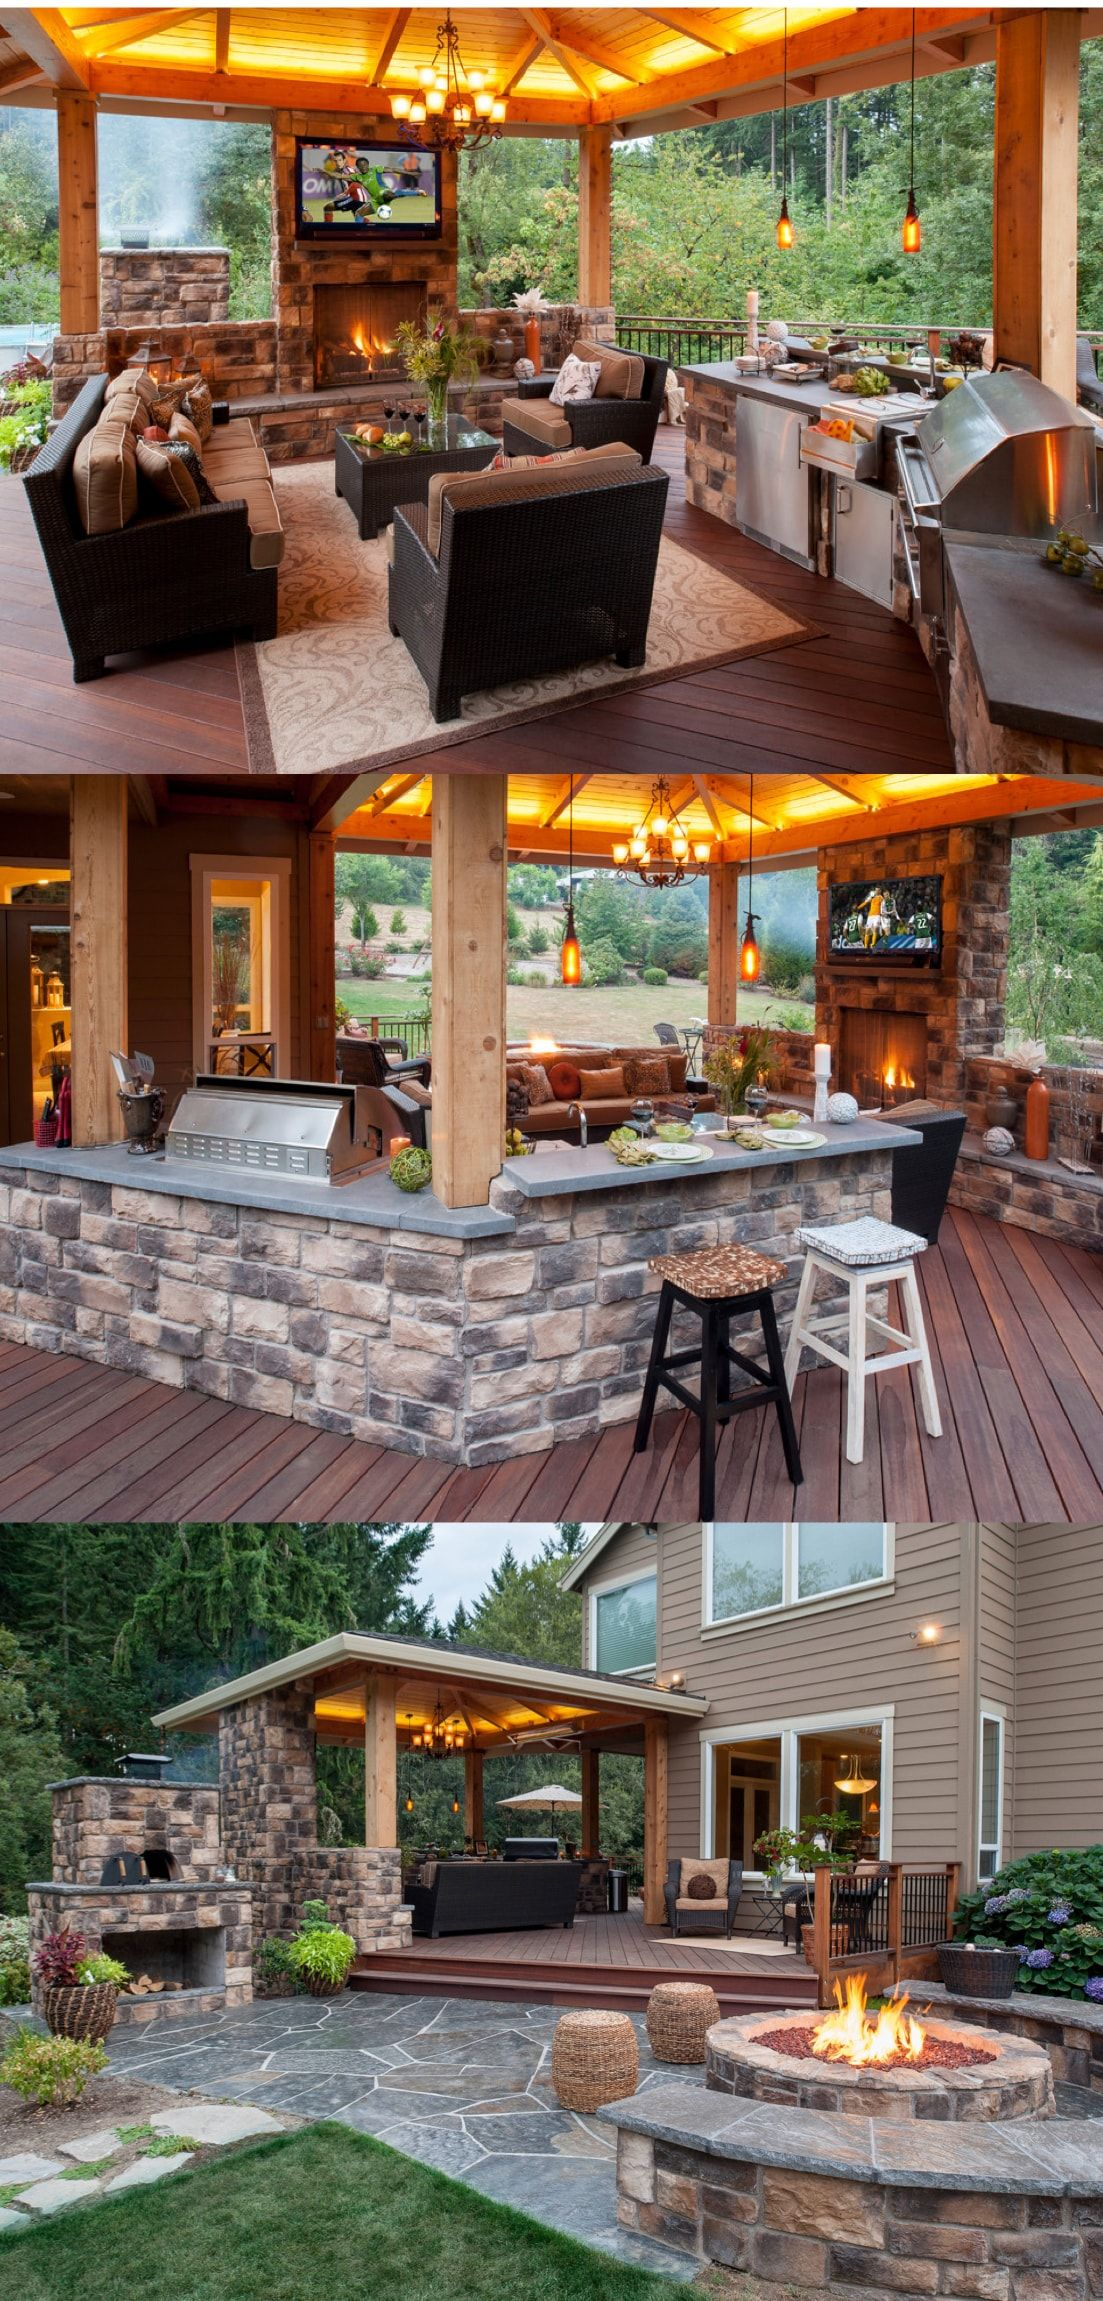 Incredible outdoor kitchen with a bar and dining room area